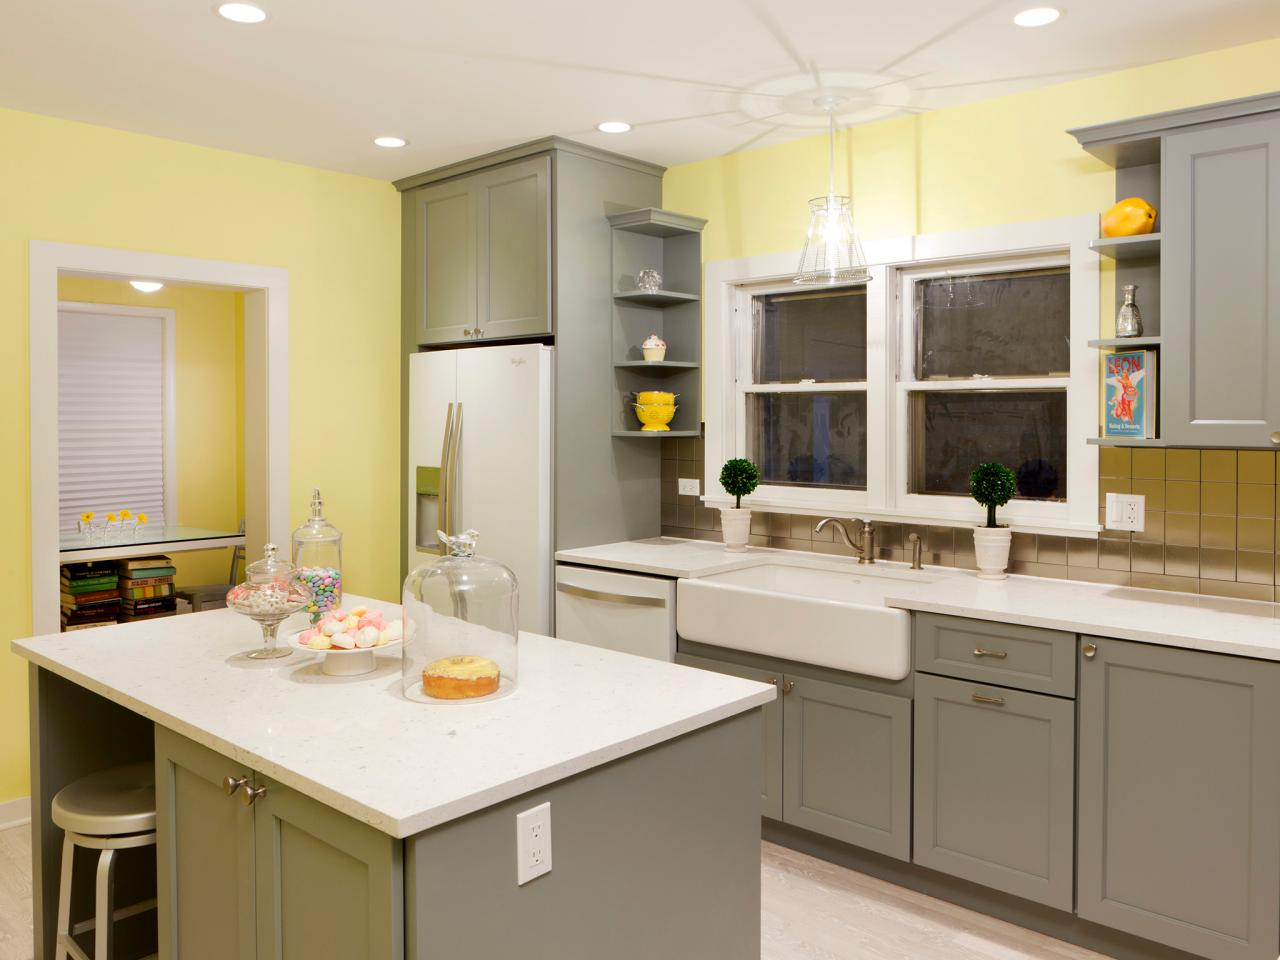 White Quartz Kitchen Countertops quartz kitchen countertops: pictures & ideas from hgtv | hgtv